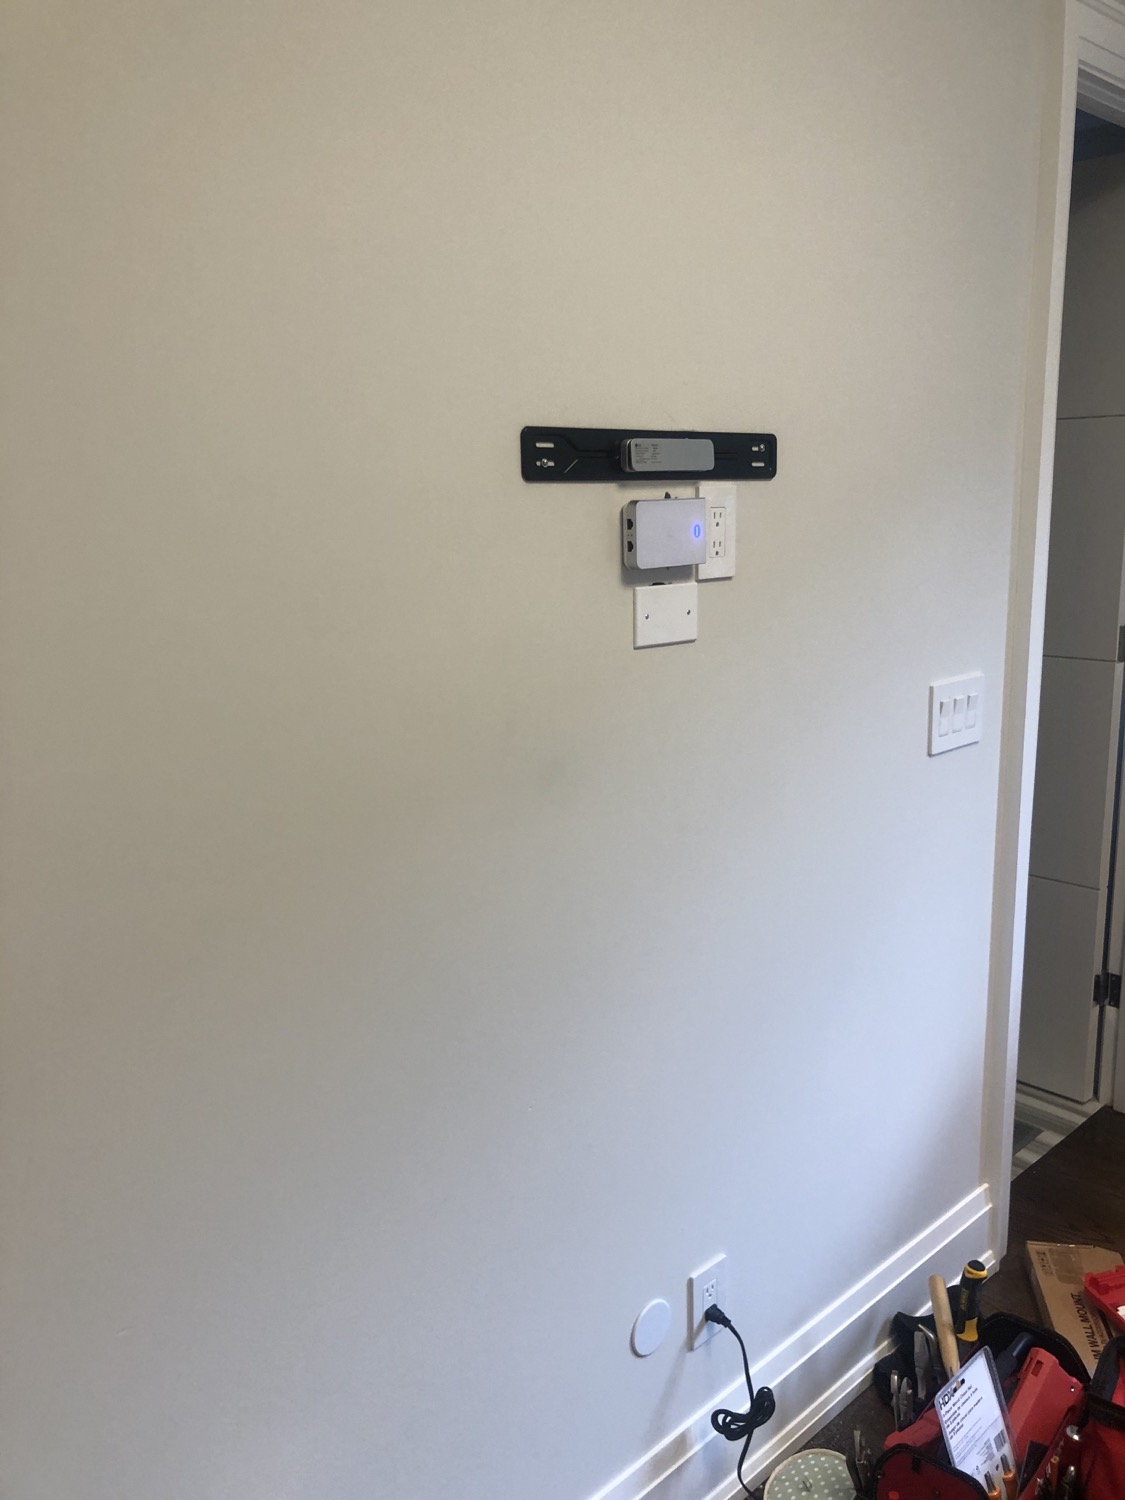 WiFi Access Point + TV Wall Mount